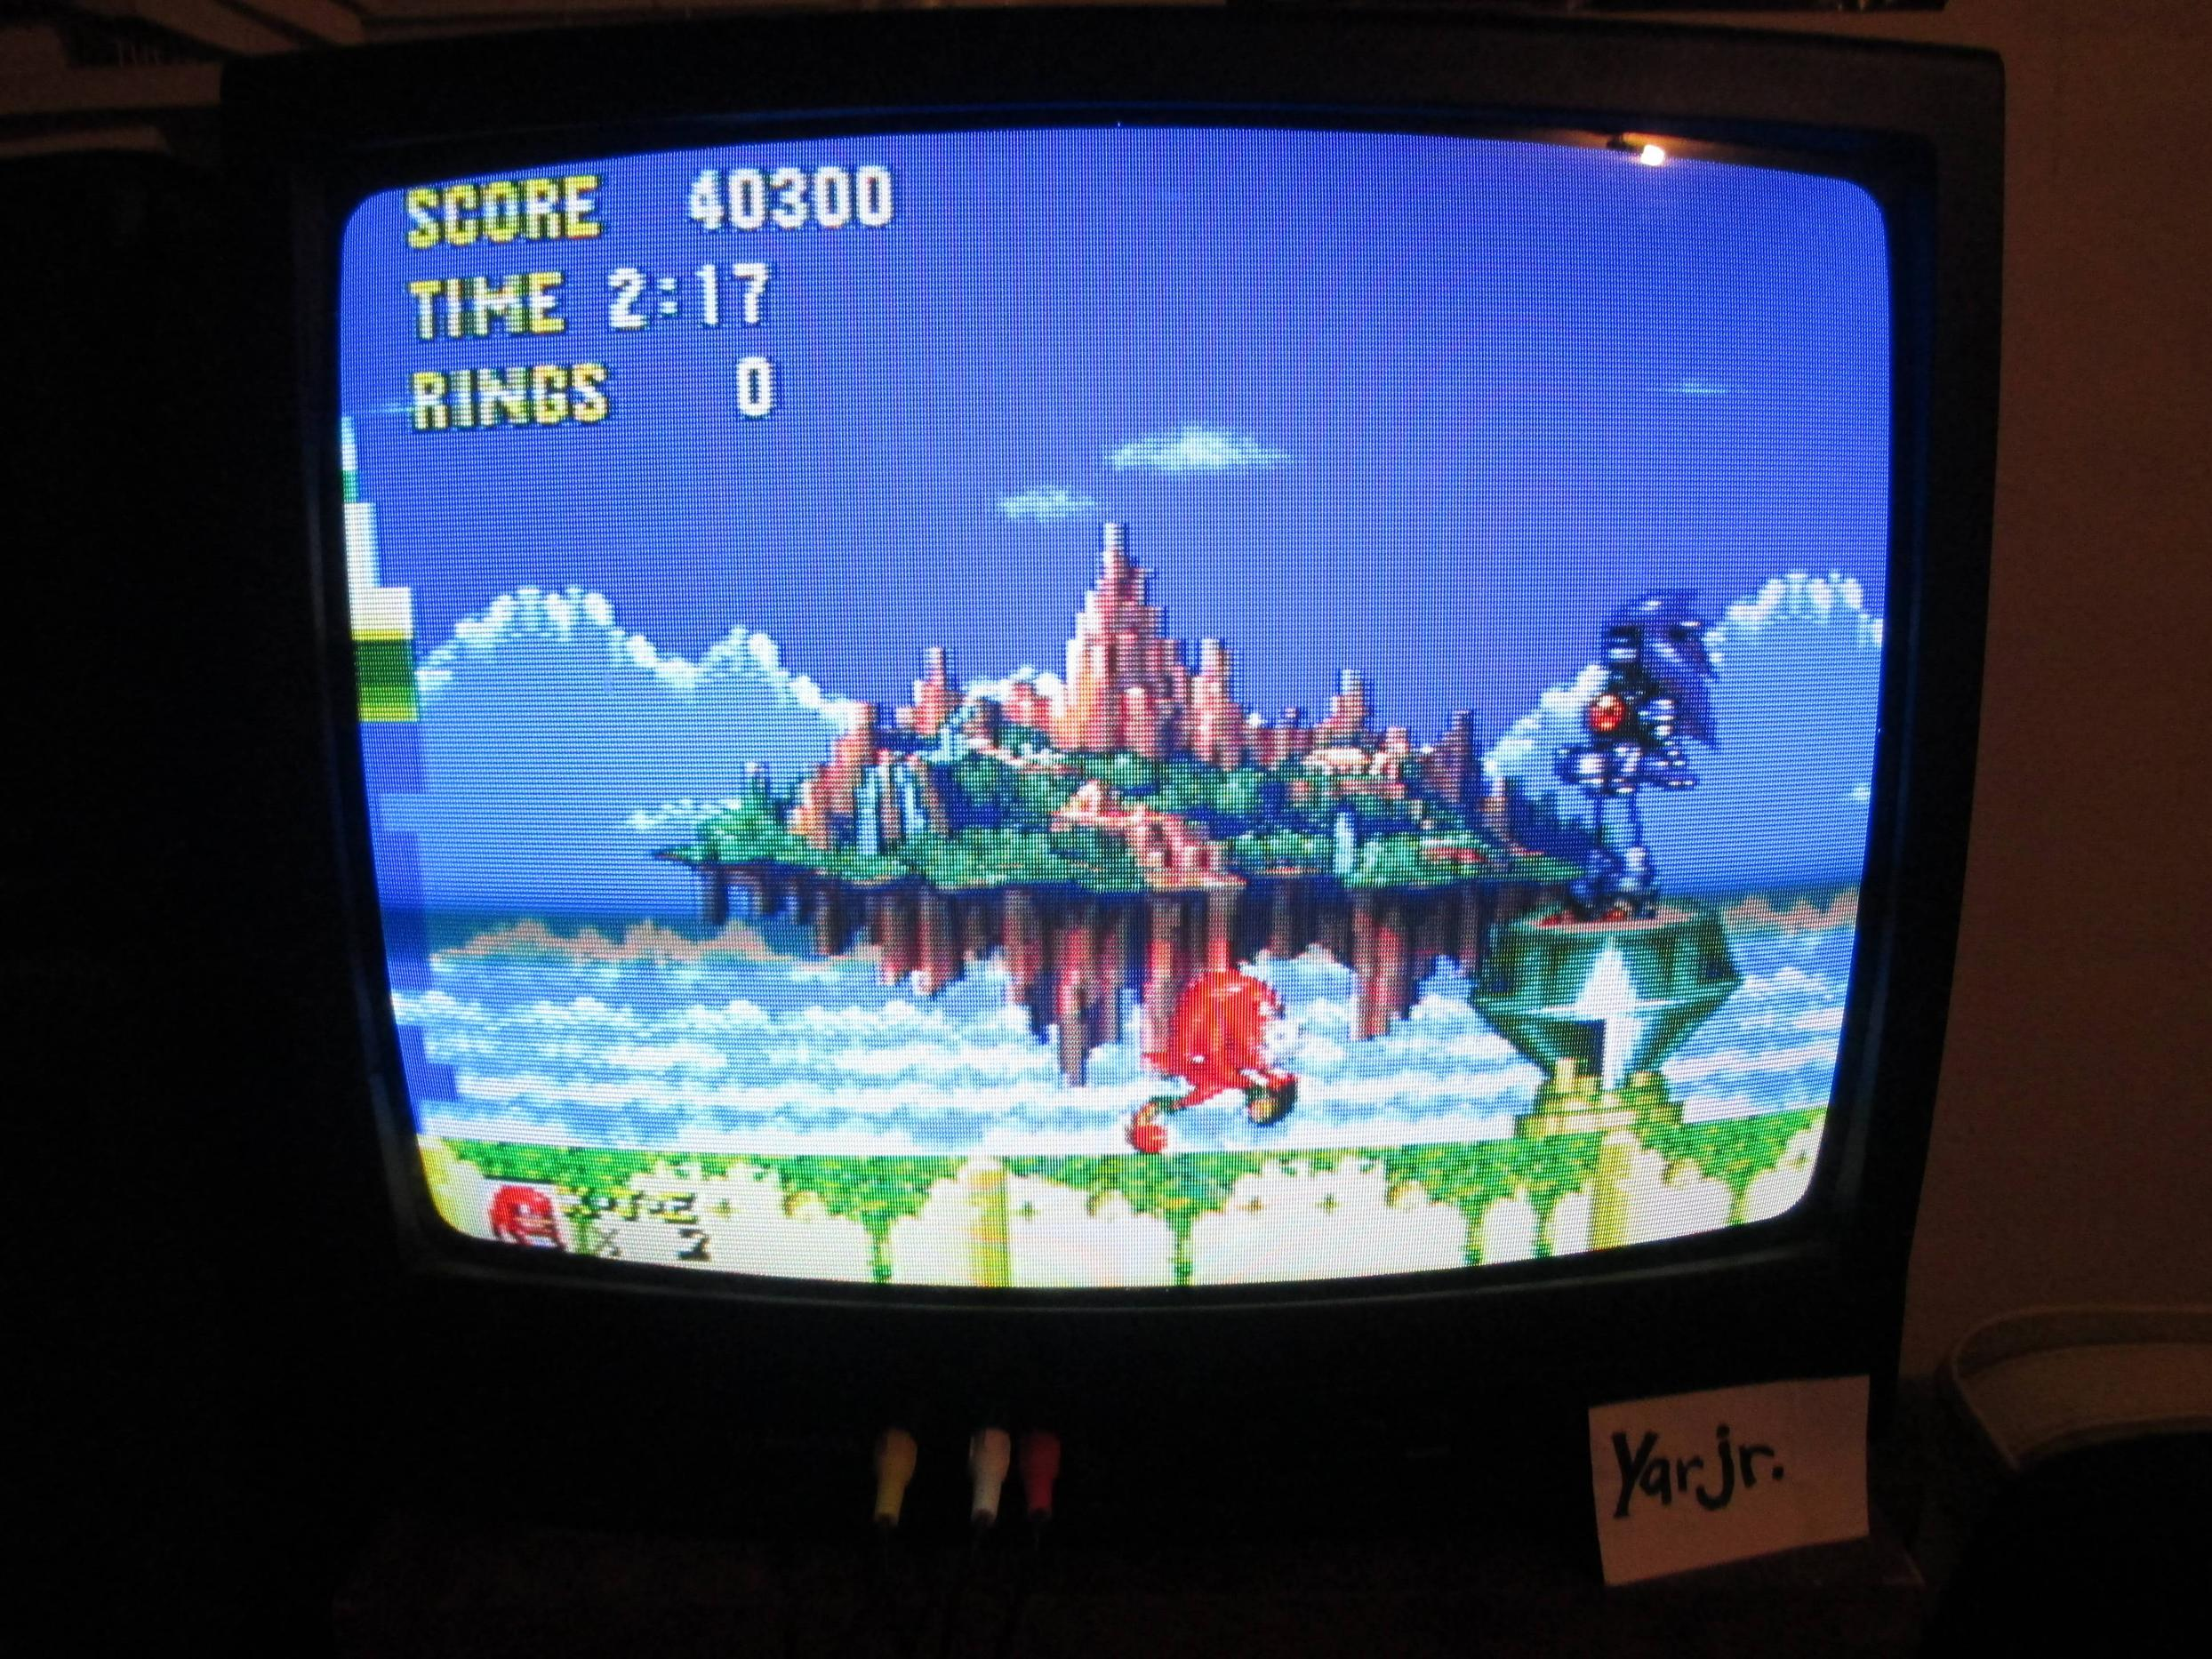 Sonic and Knuckles 40,300 points